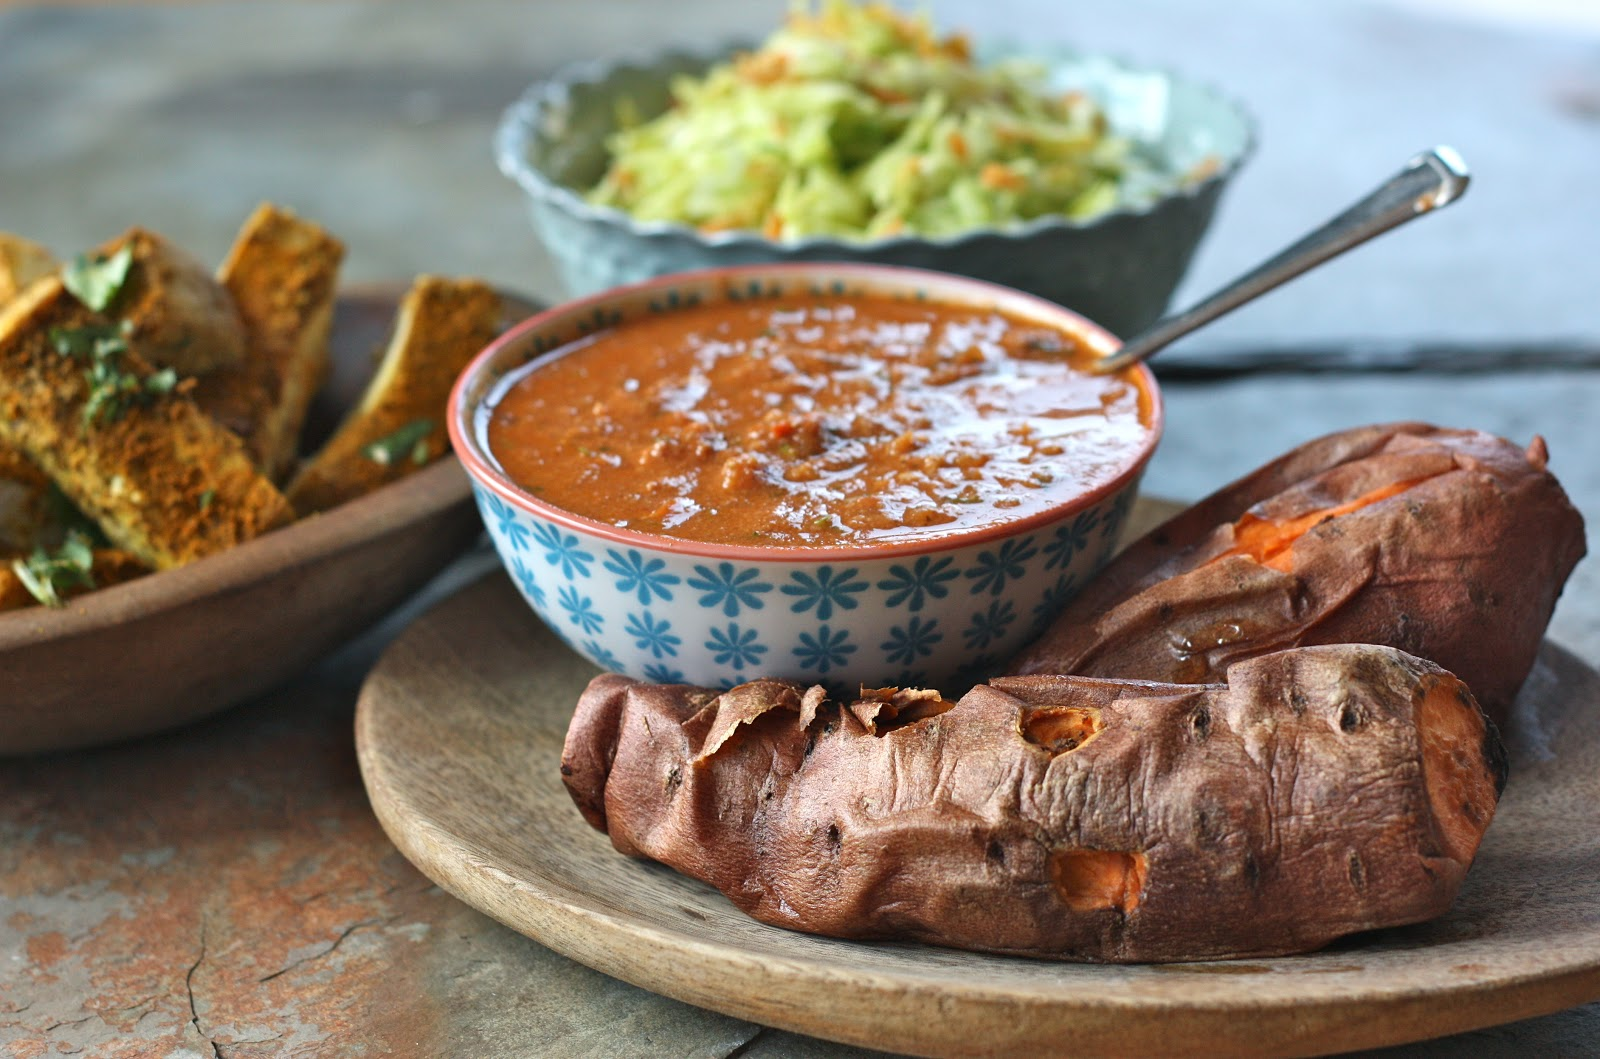 natural food blog: Baked Sweet Potato in a West African Peanut Sauce